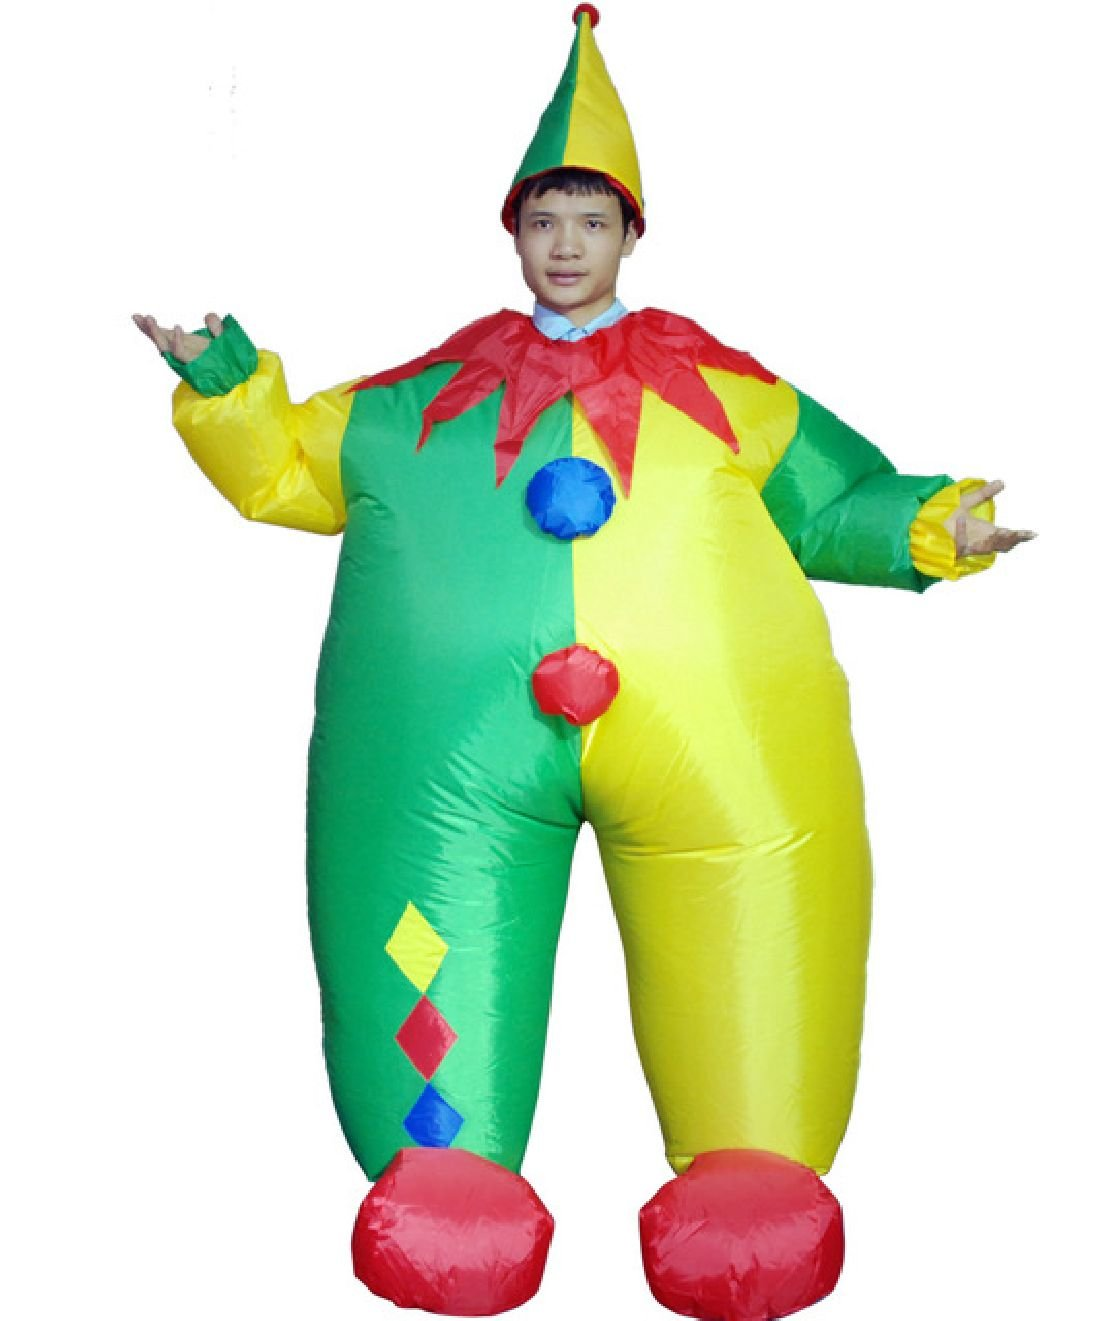 Inflatable Clown Costume Funny Game Cosplay Dress Halloween Party Clothes